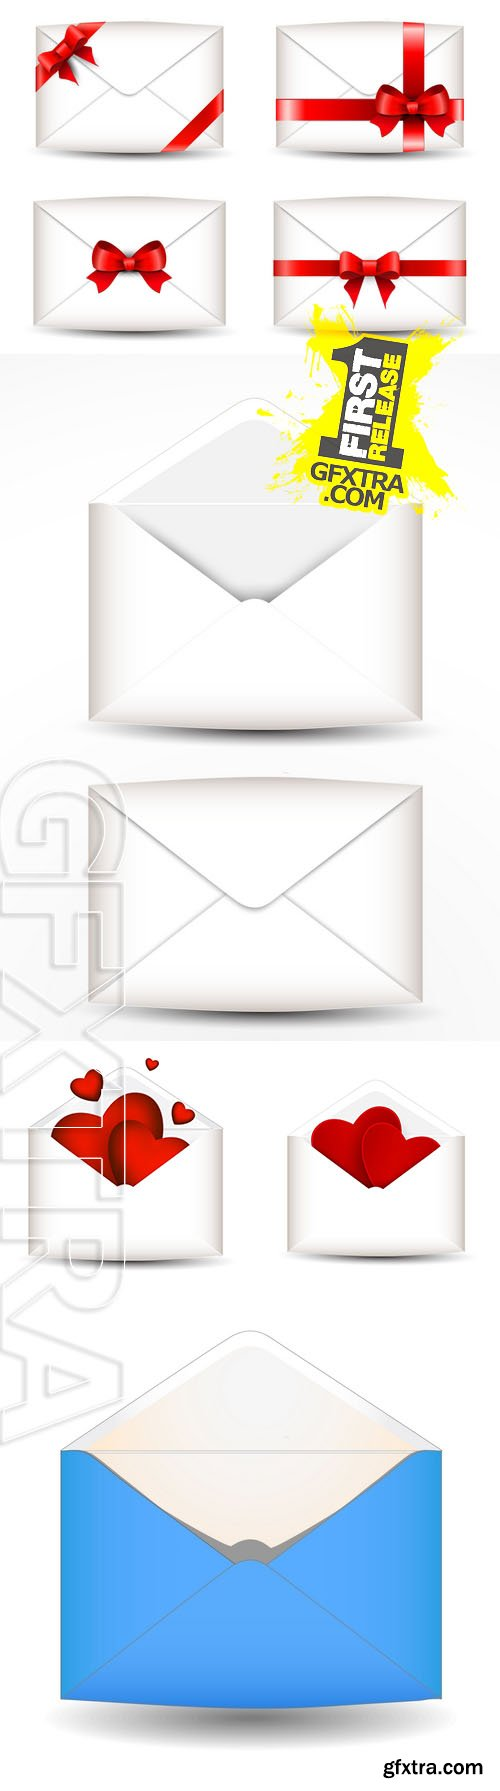 Vector - Mail Envelope